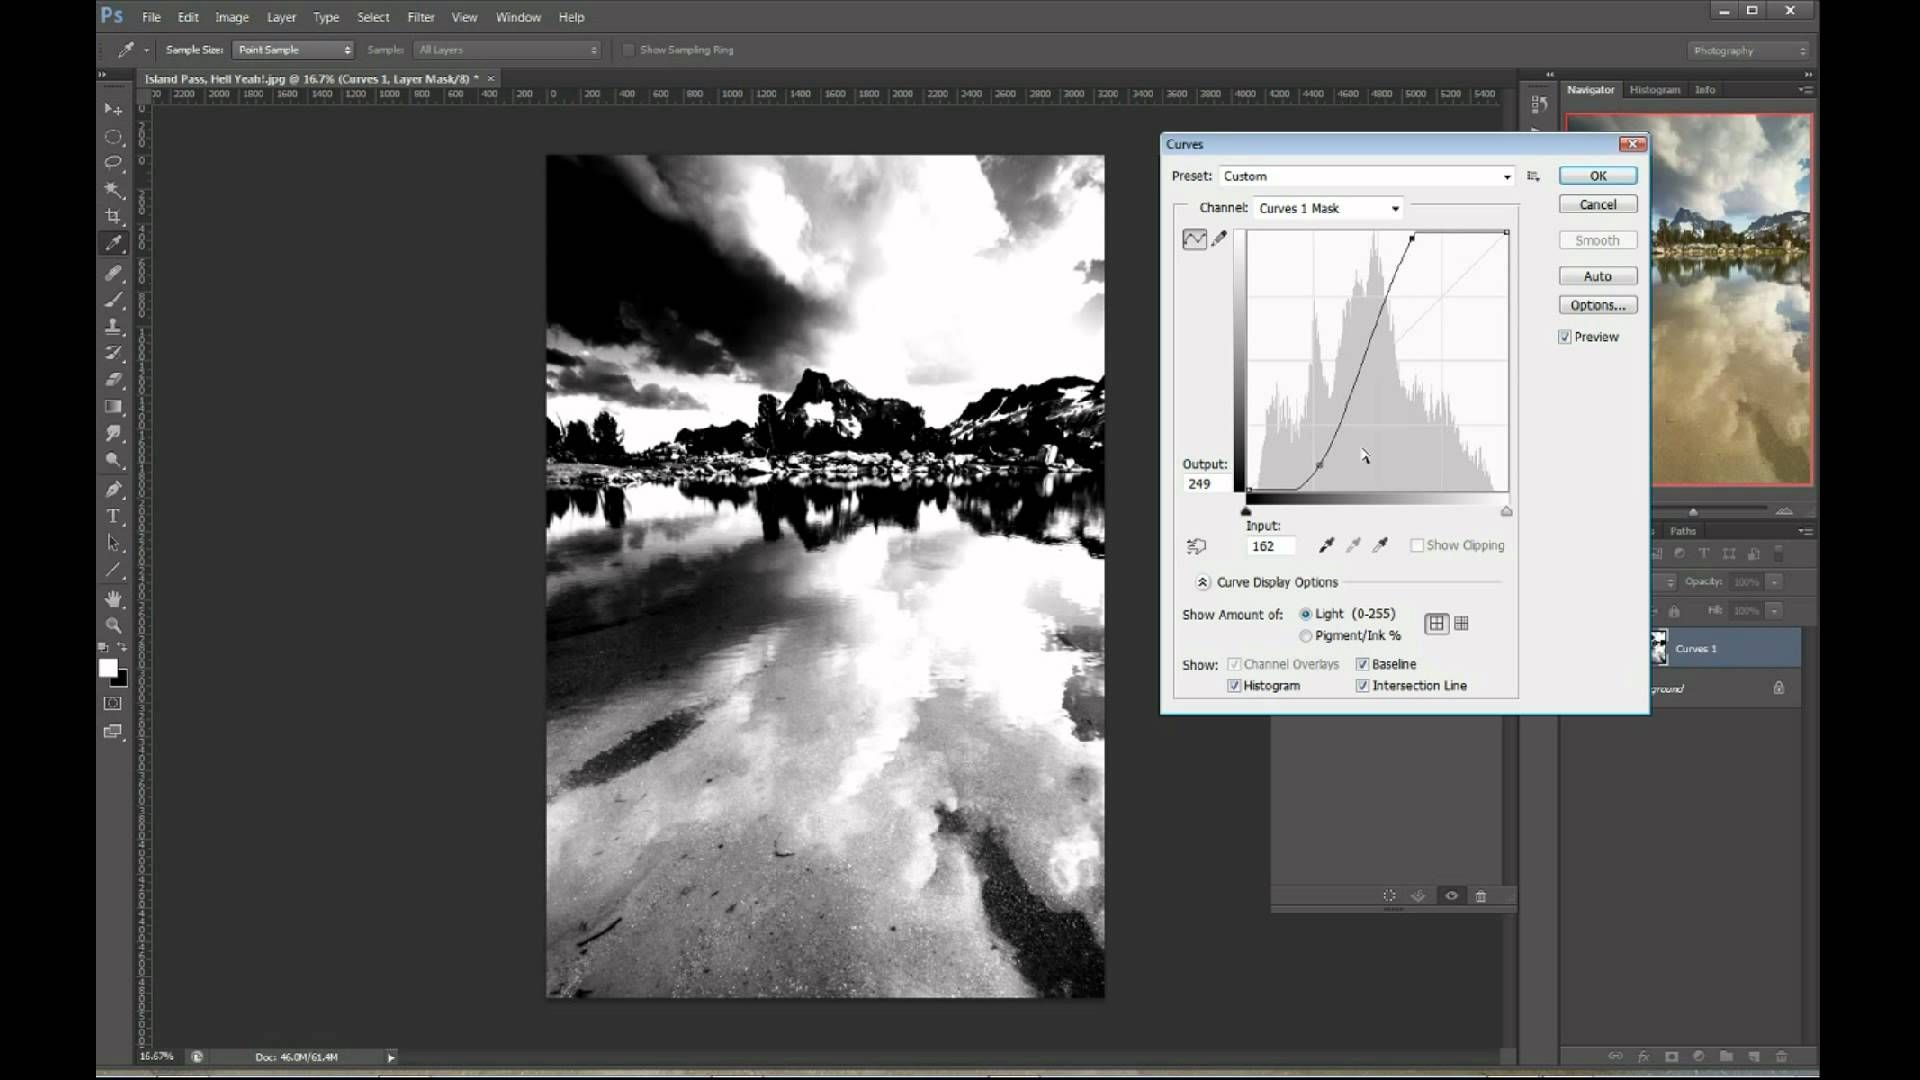 Photoshop tutorial 5 awesome layer mask tricks gmp phts photoshop tutorial 5 awesome layer mask tricks baditri Image collections